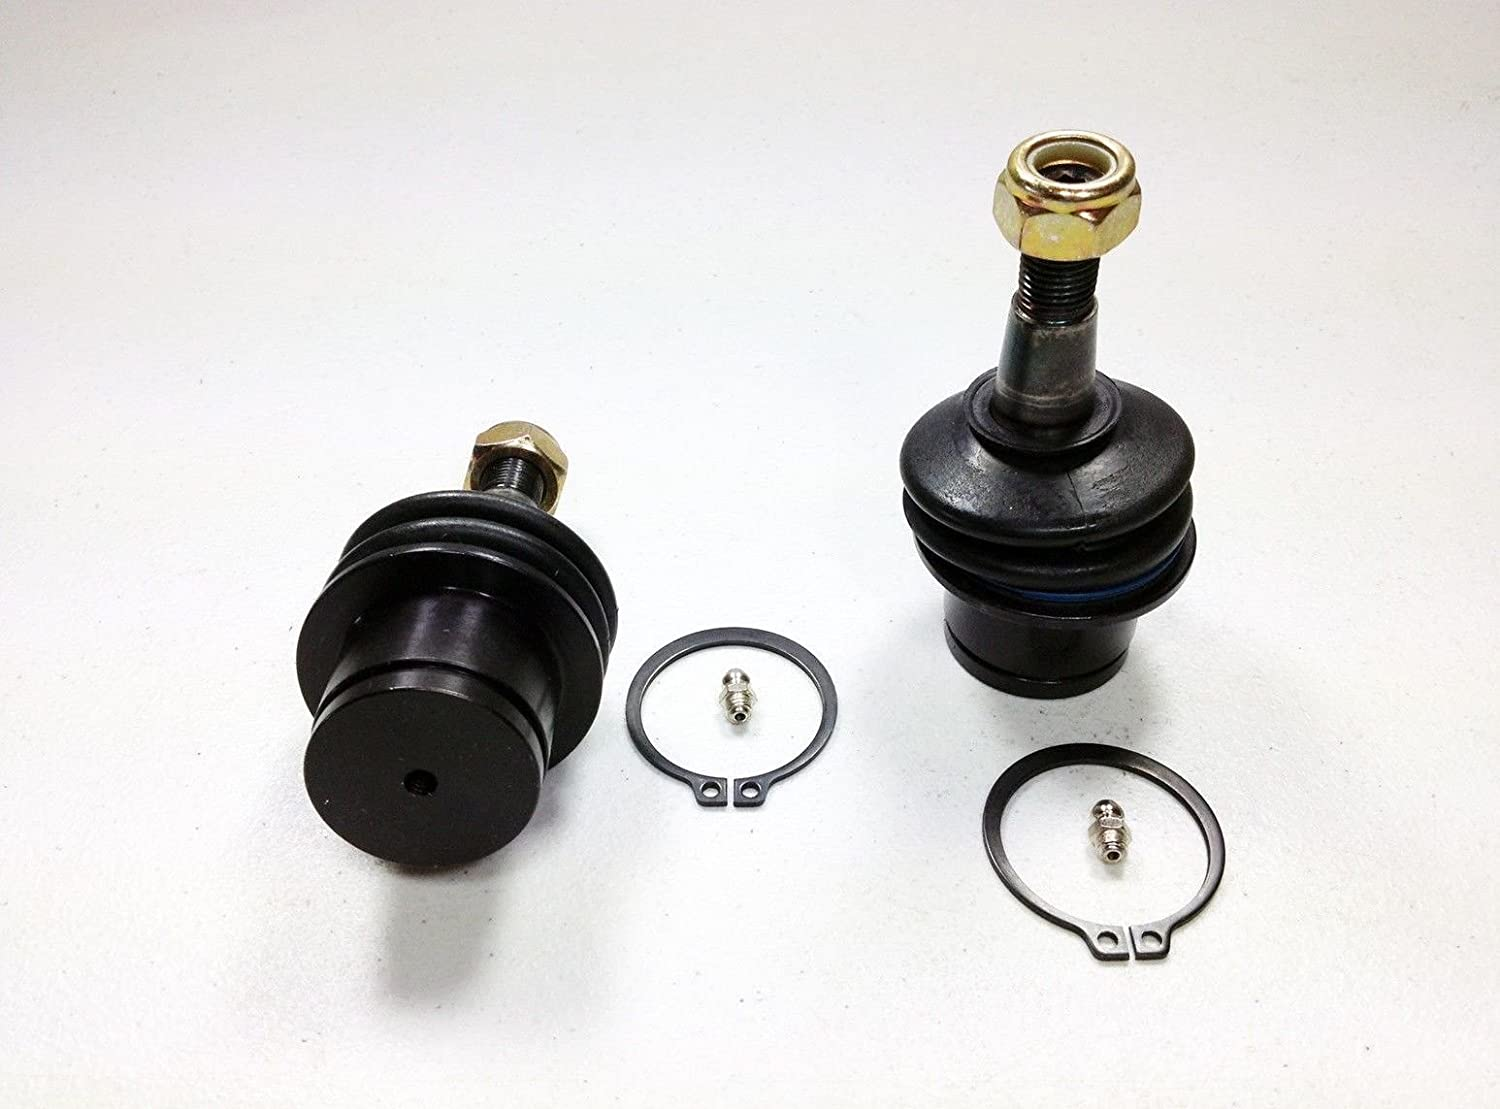 2 Pc Suspension Front Left Right Ball Joints Lower Max 81% OFF Adjustable Super beauty product restock quality top!